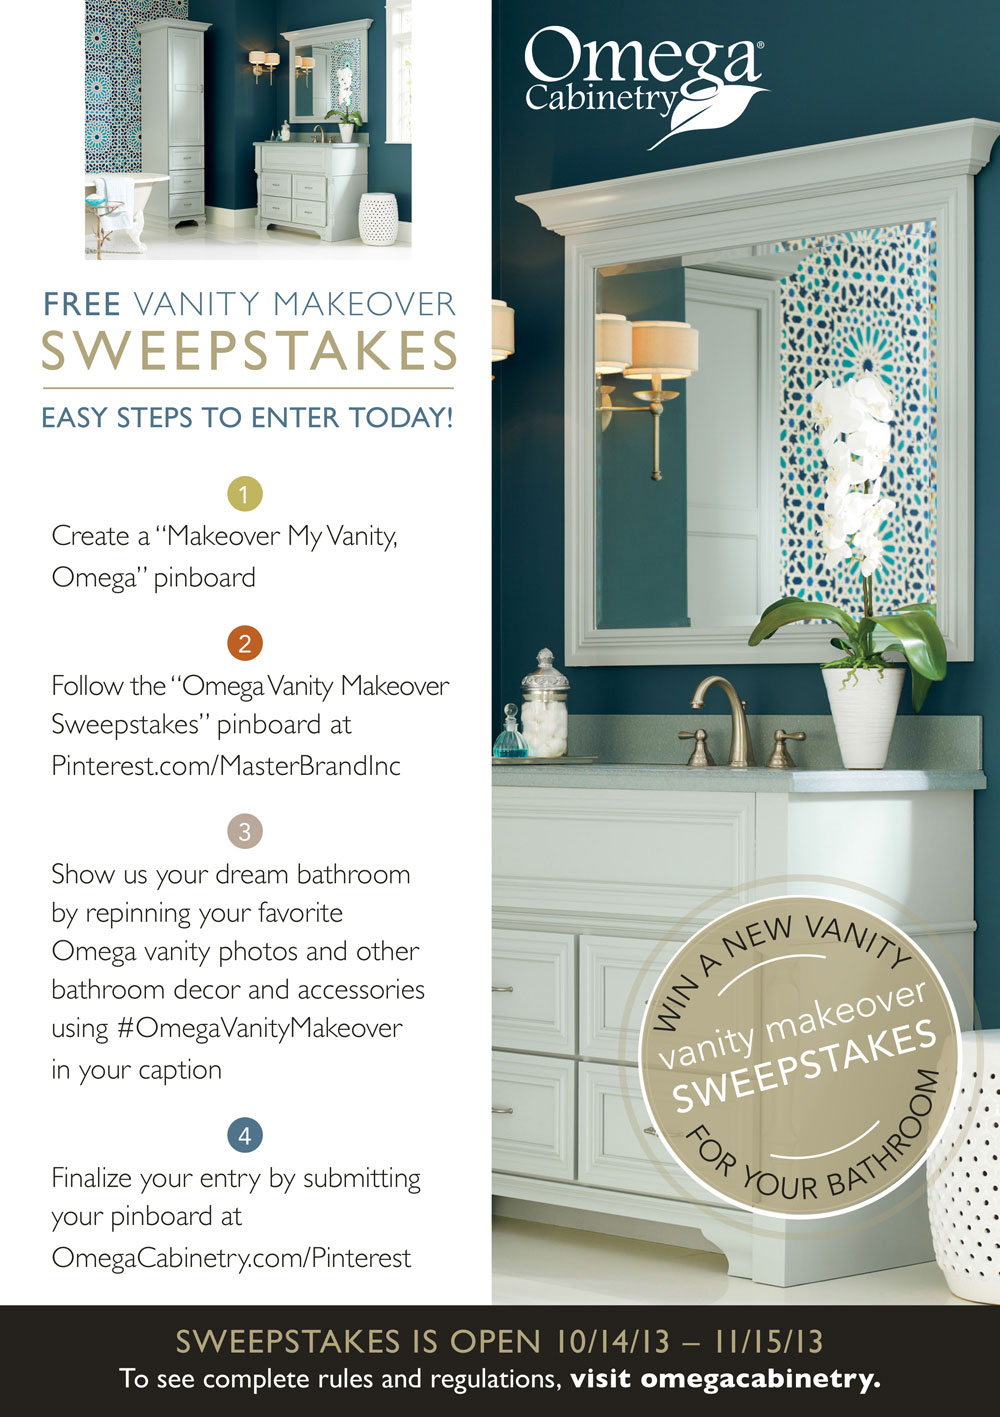 Free Bathroom Vanity Makeover Sweepstakes – MasterBrand